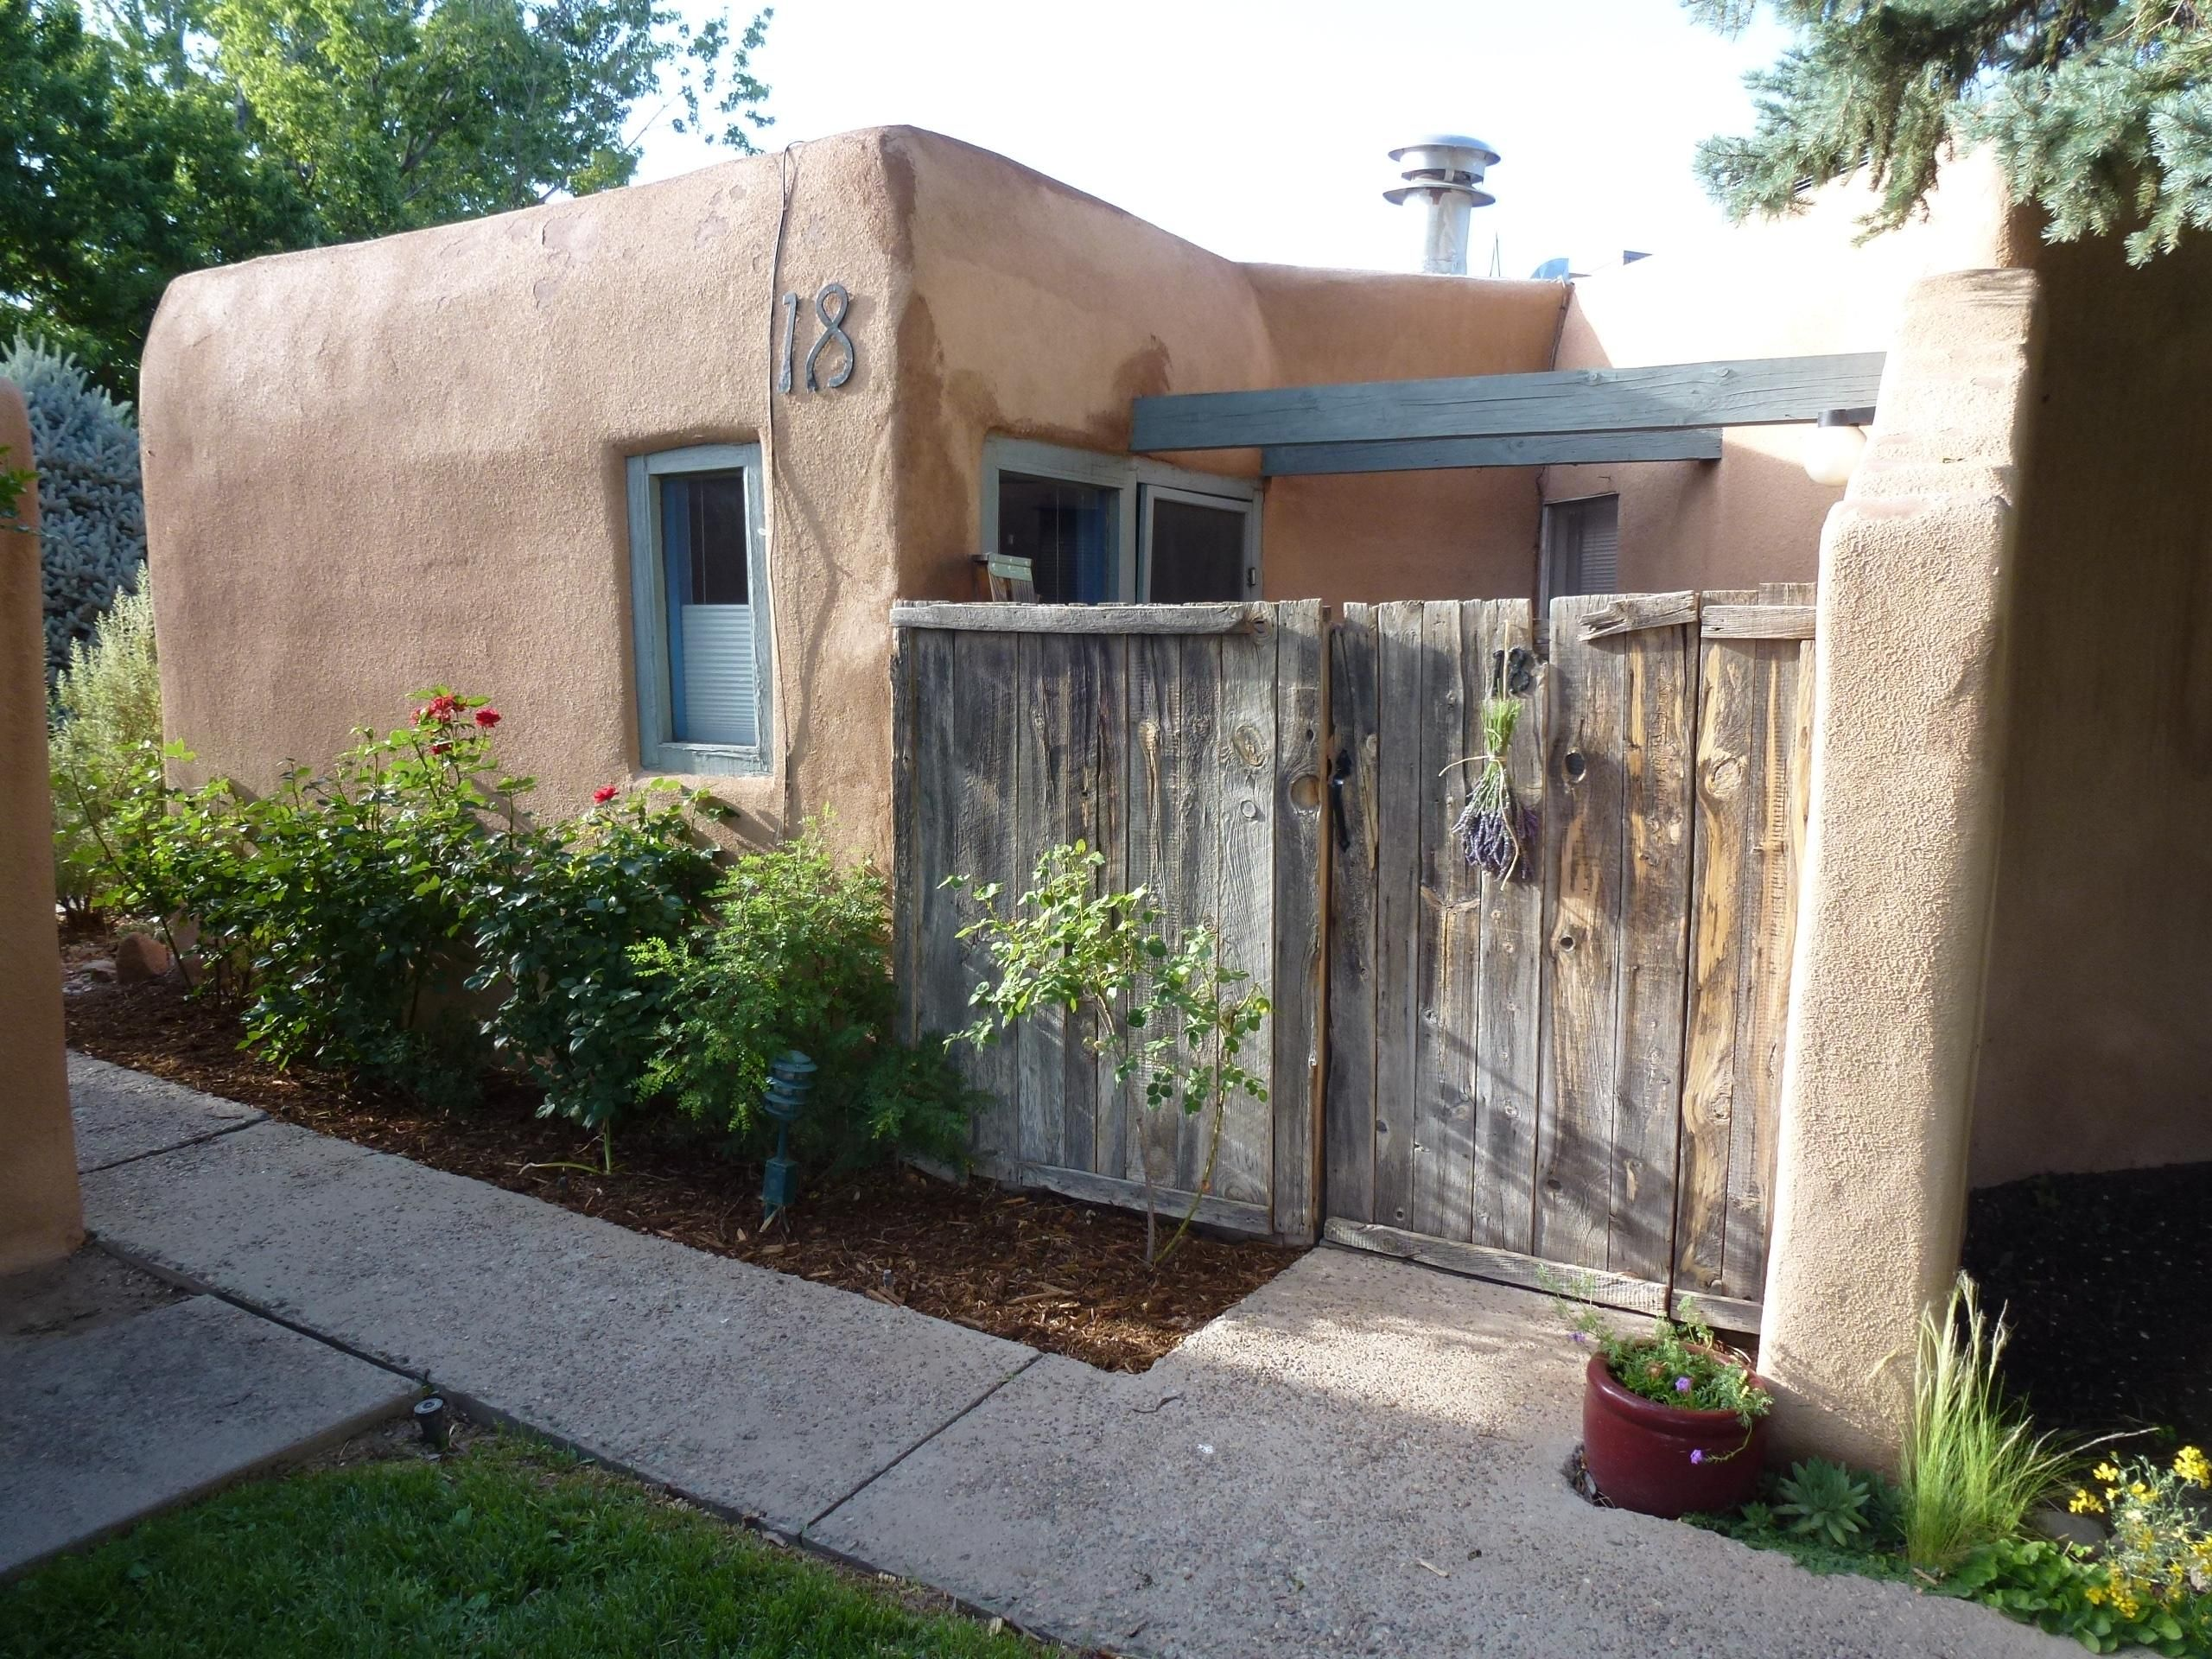 Traditional New Mexico Adobe Condo Albuquerque S North Valley Tiny House For Sale In Albuquerque New Mexico Tiny House Listings Adobe House Earth Homes Cabins And Cottages